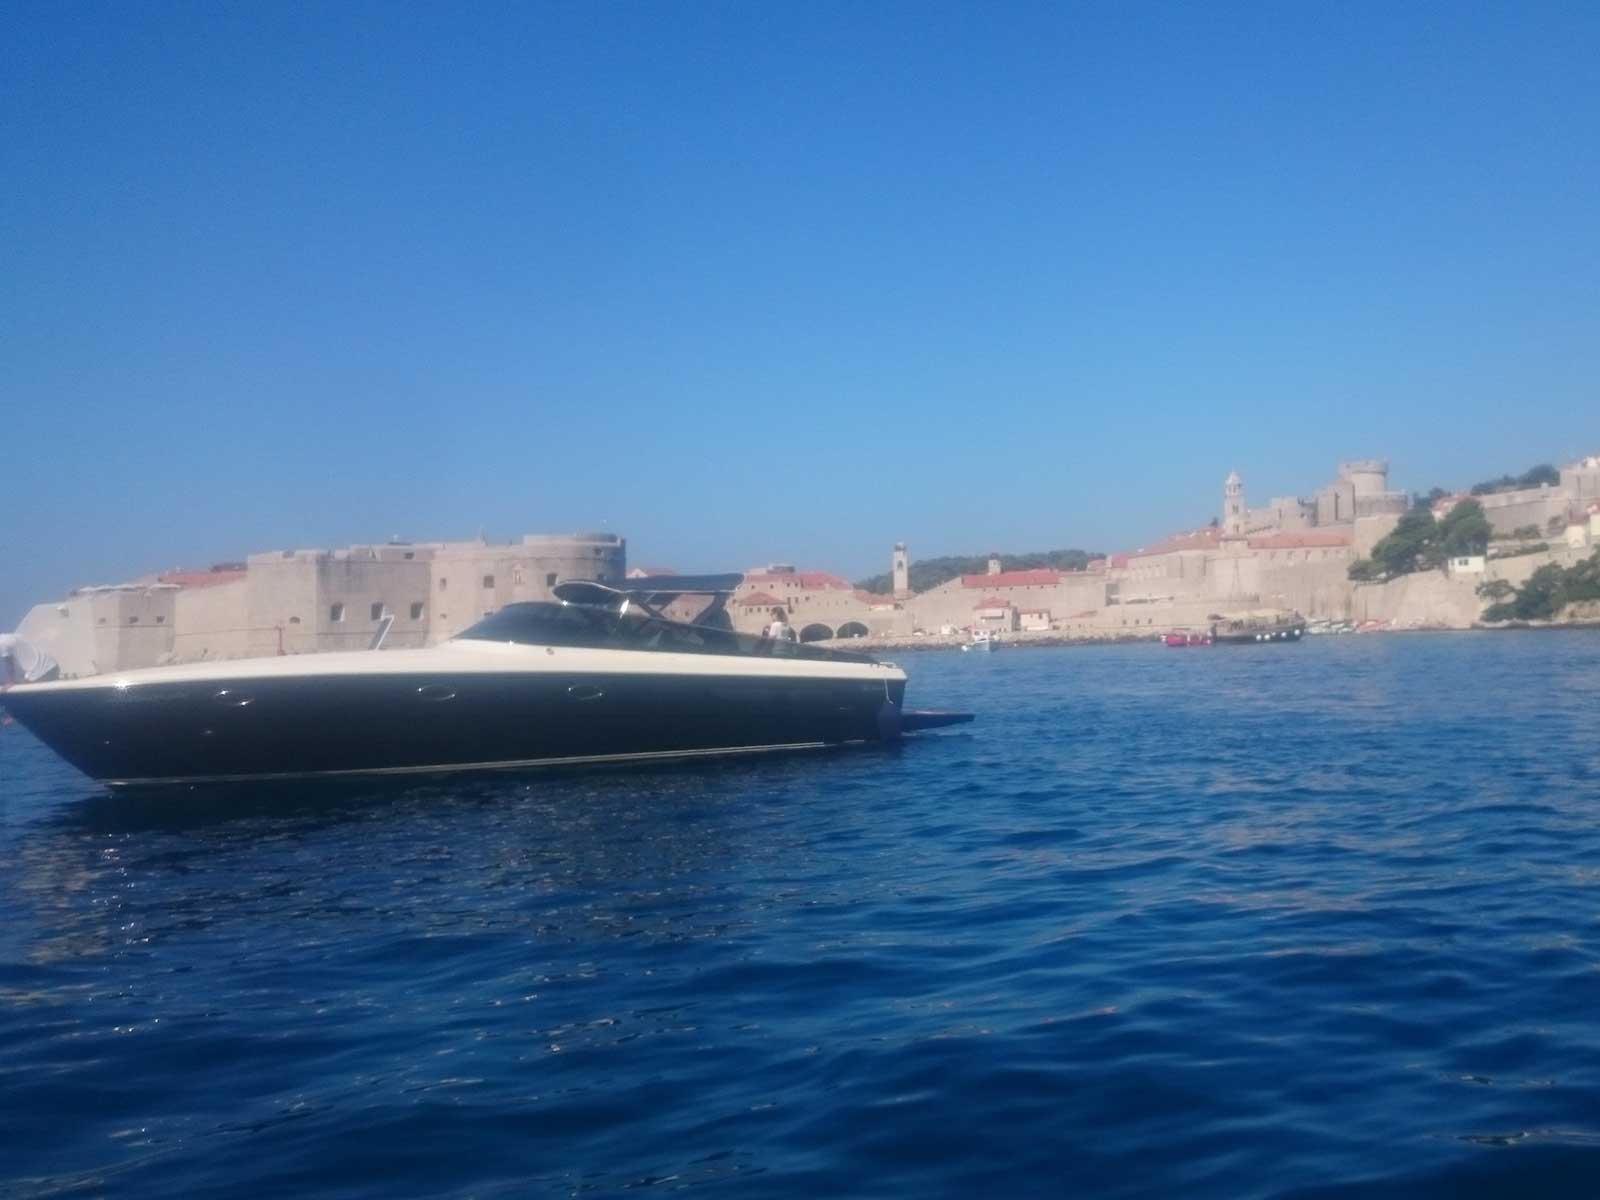 -images-excursions-elaphite-islands-speed-boat-excursion-a-luxury-yacht-itama-40-day-charter-dubrovnik.jpg